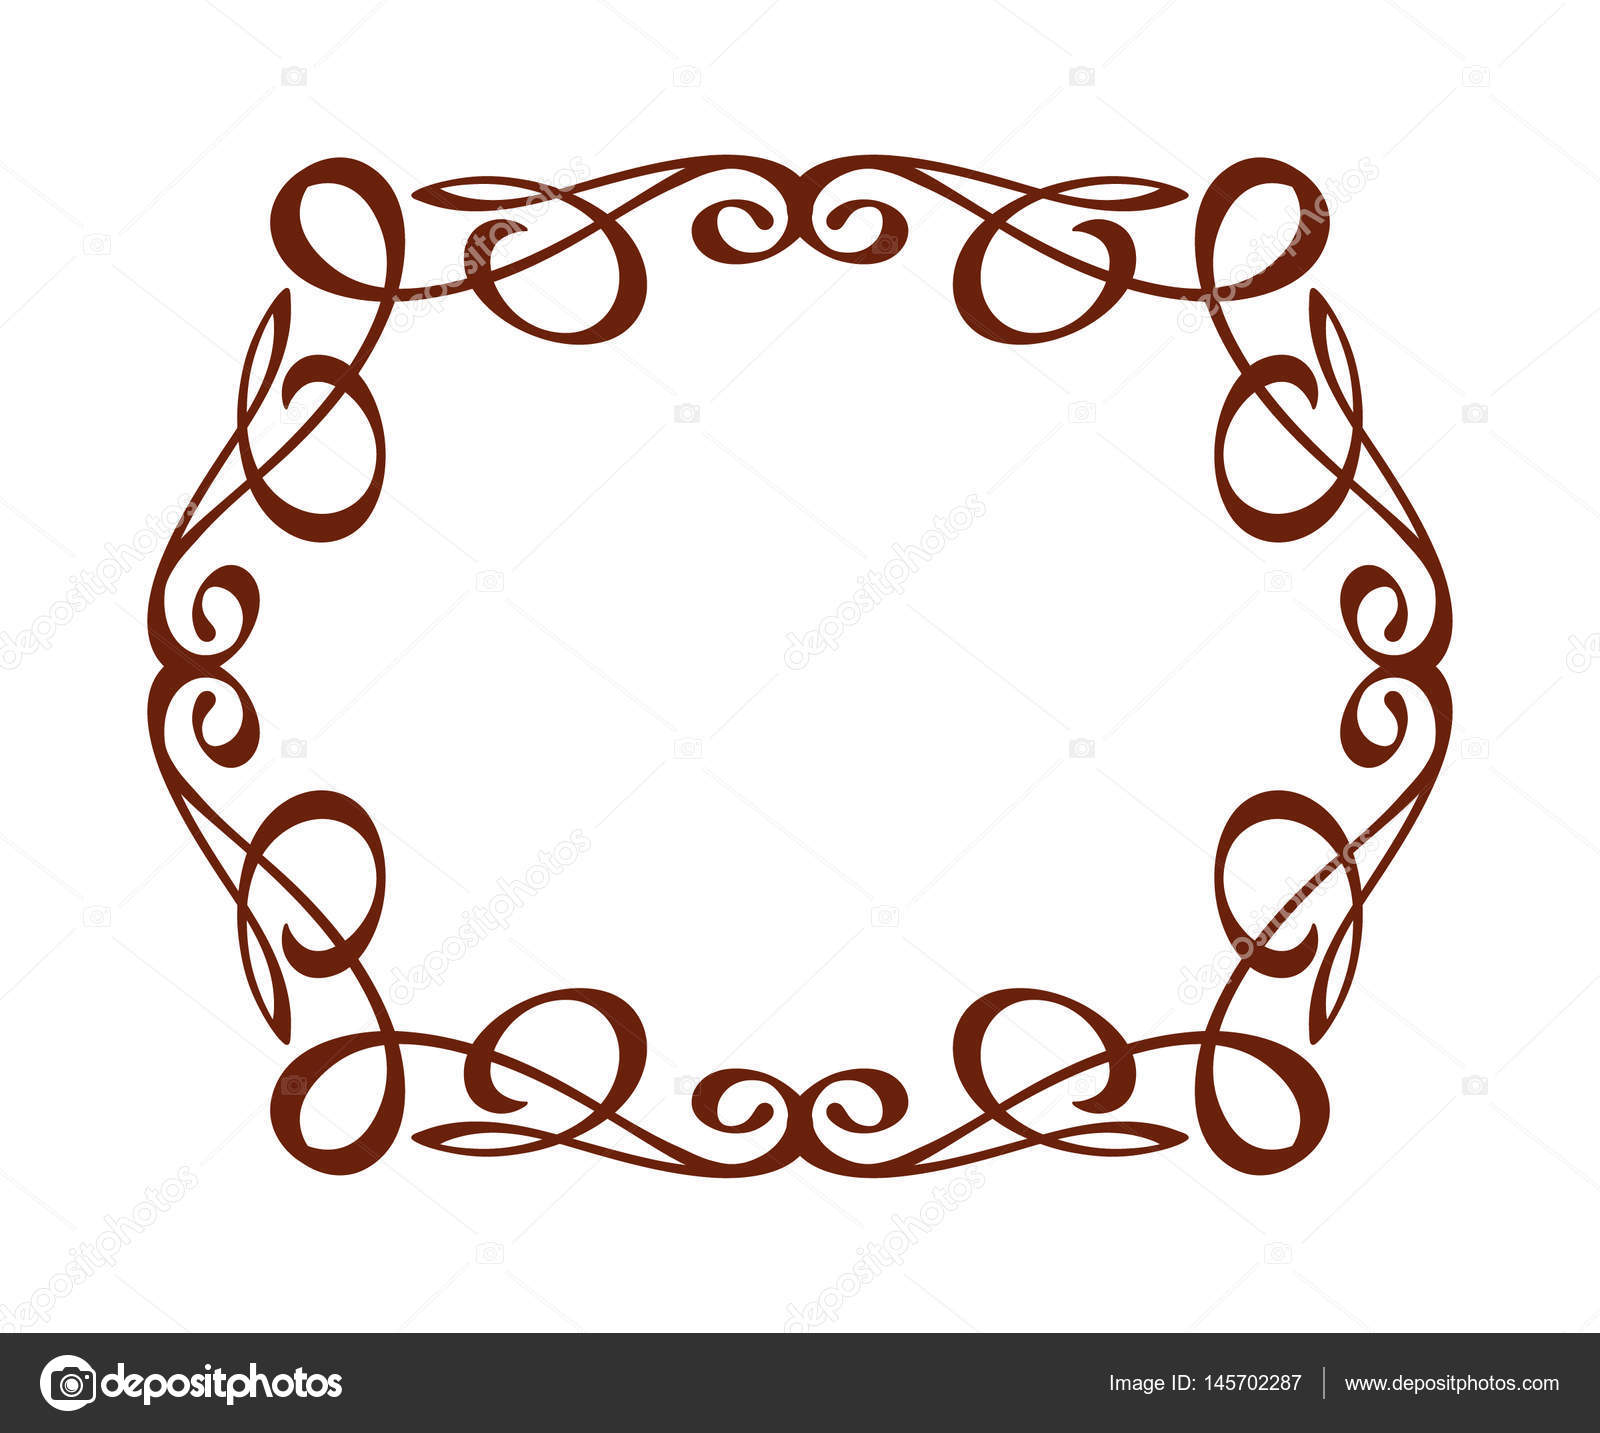 decorative frames vintage vector brown on white vector illustration rh depositphotos com vintage baroque frame vector vintage vector frames and borders free